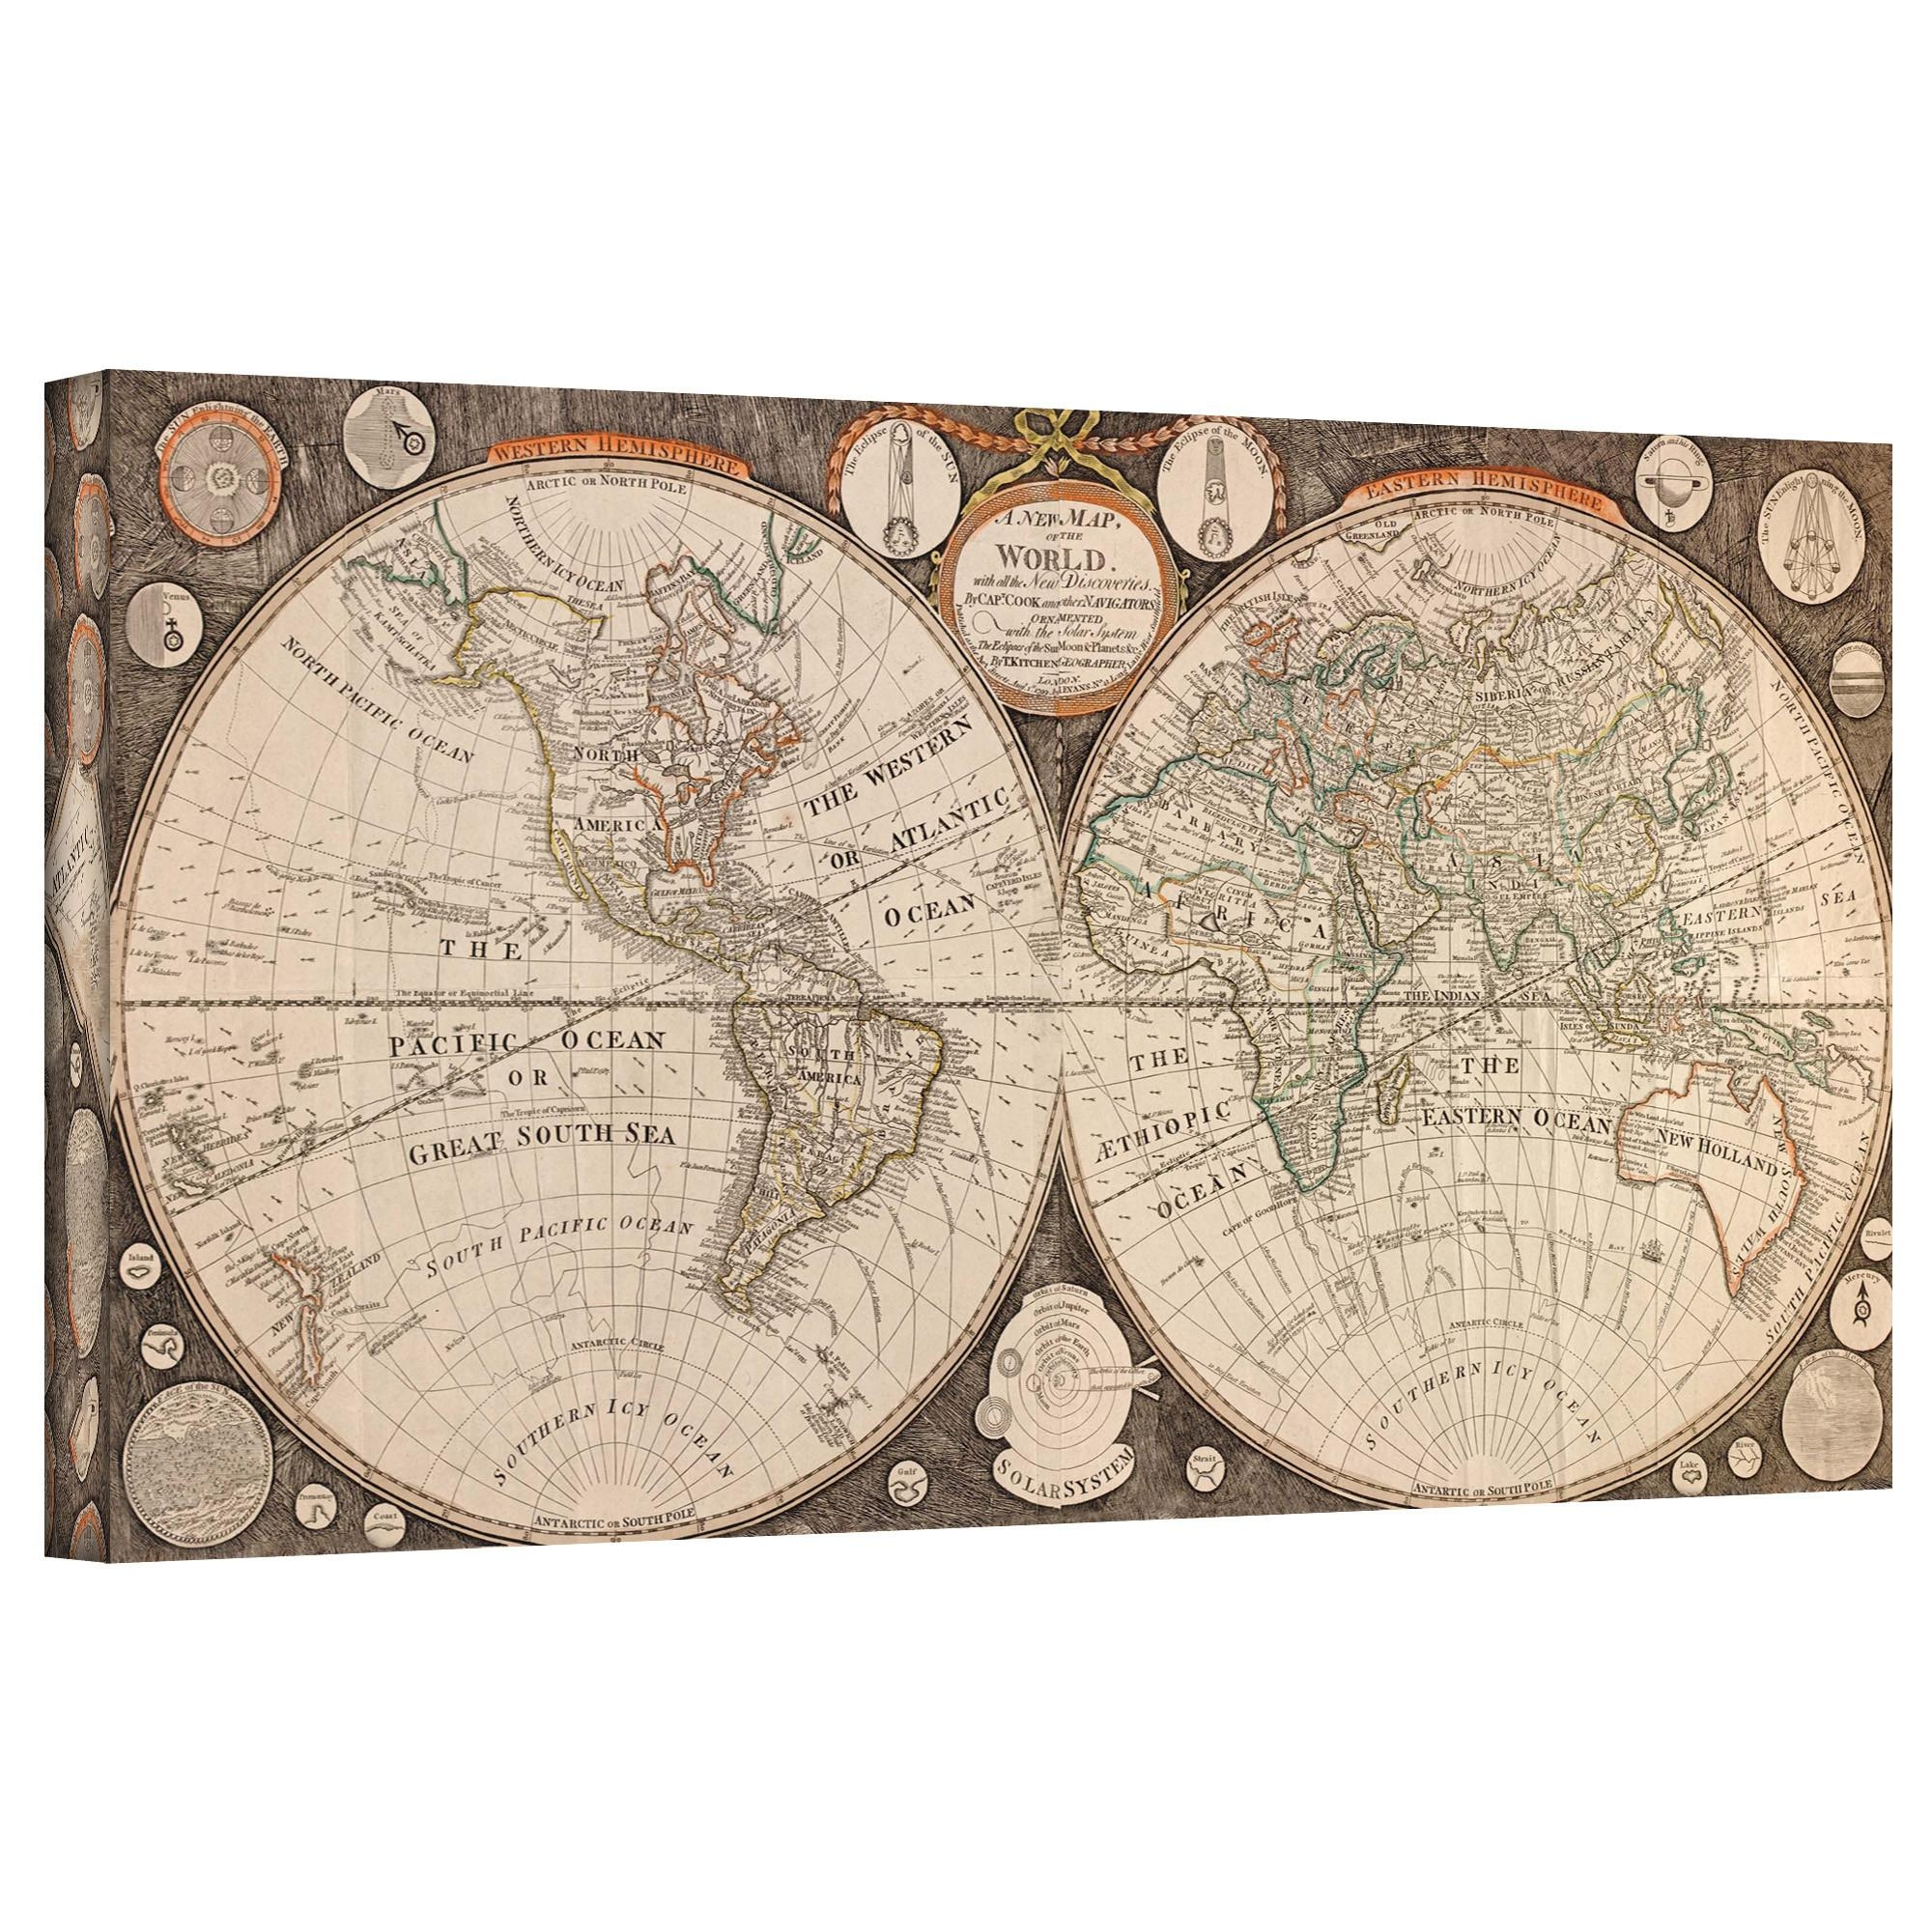 Wall Art Designs: Wonderful Home Decor Vintage Maps Wall Art For Vintage Map Wall Art (View 5 of 20)